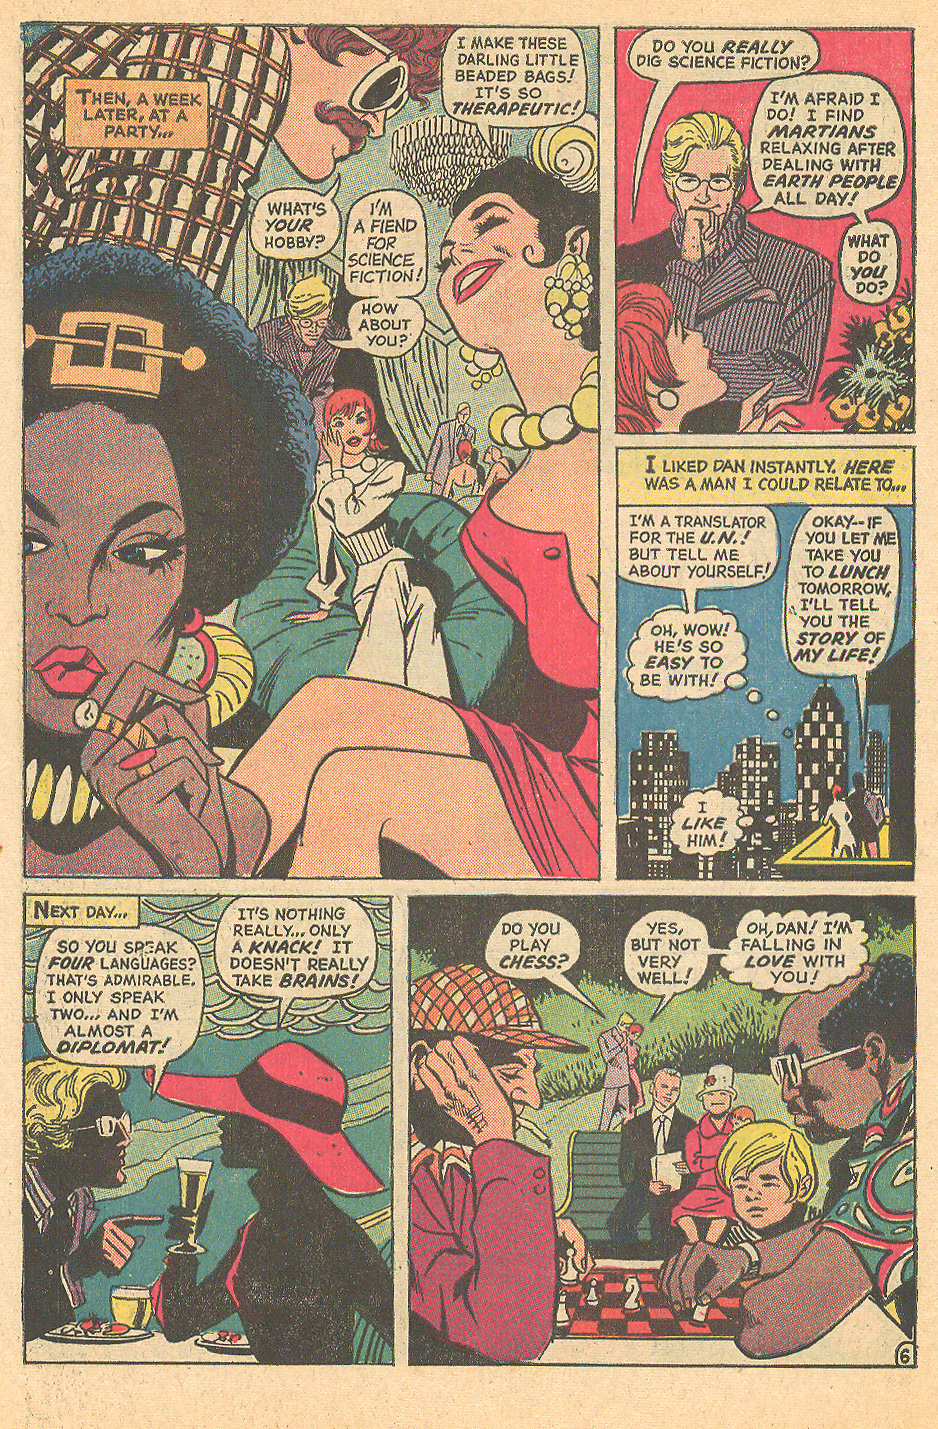 """Too Smart to Love!"" from Falling in Love #137 (October 1972). Penciled by Ric Estrada and inked by Vince Colletta"